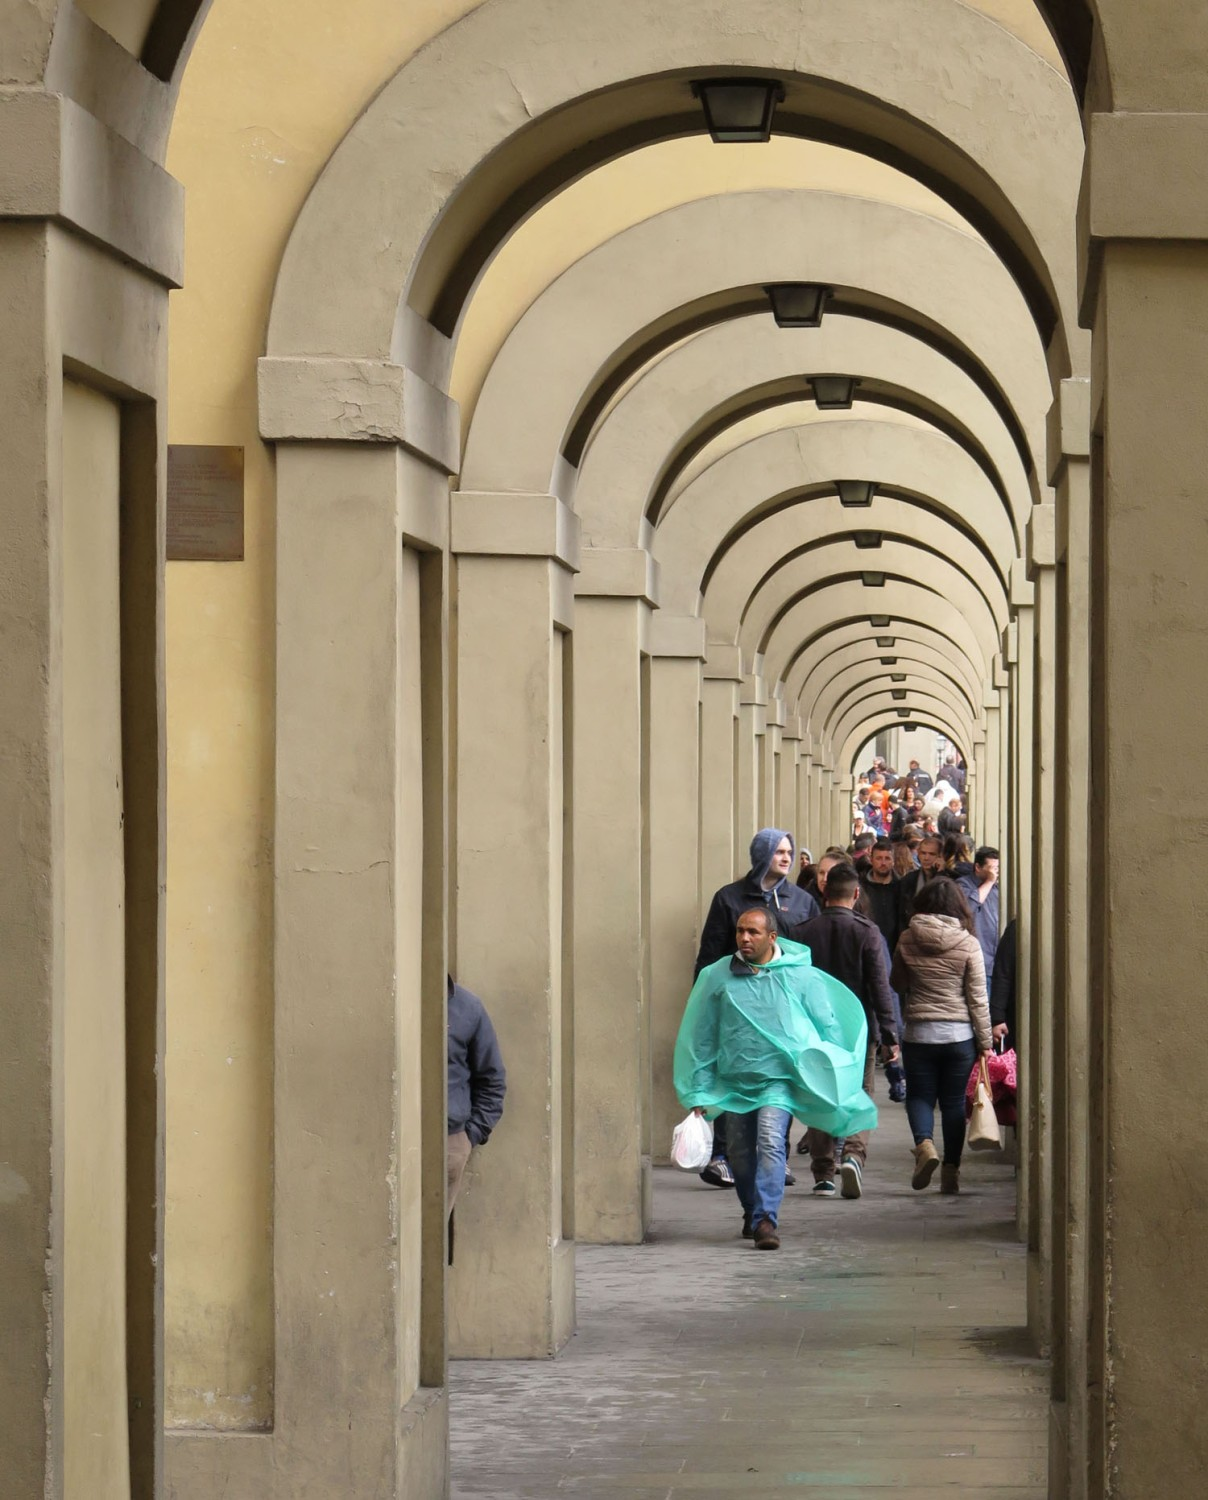 Italy-Florence-Street-Scenes-Archway